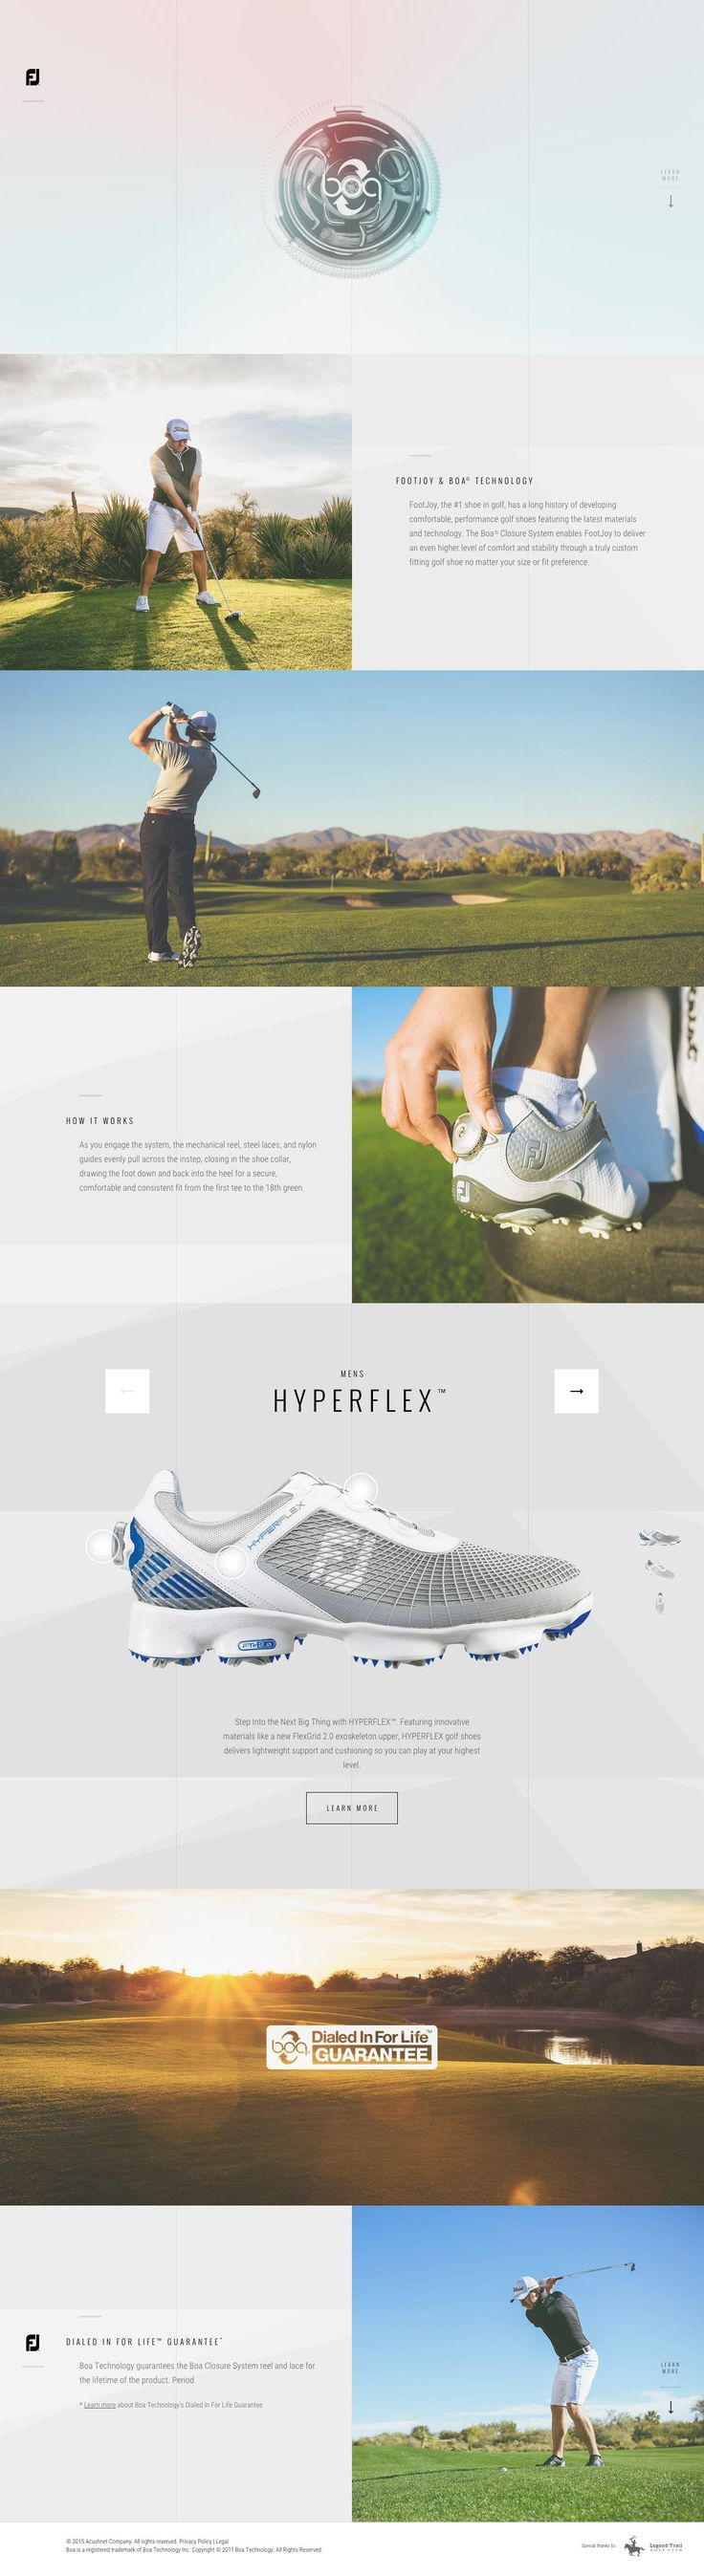 FootJoy and Boa. Developing the best of golf. #webdesign (More design inspiration at www.aldenchong.com)